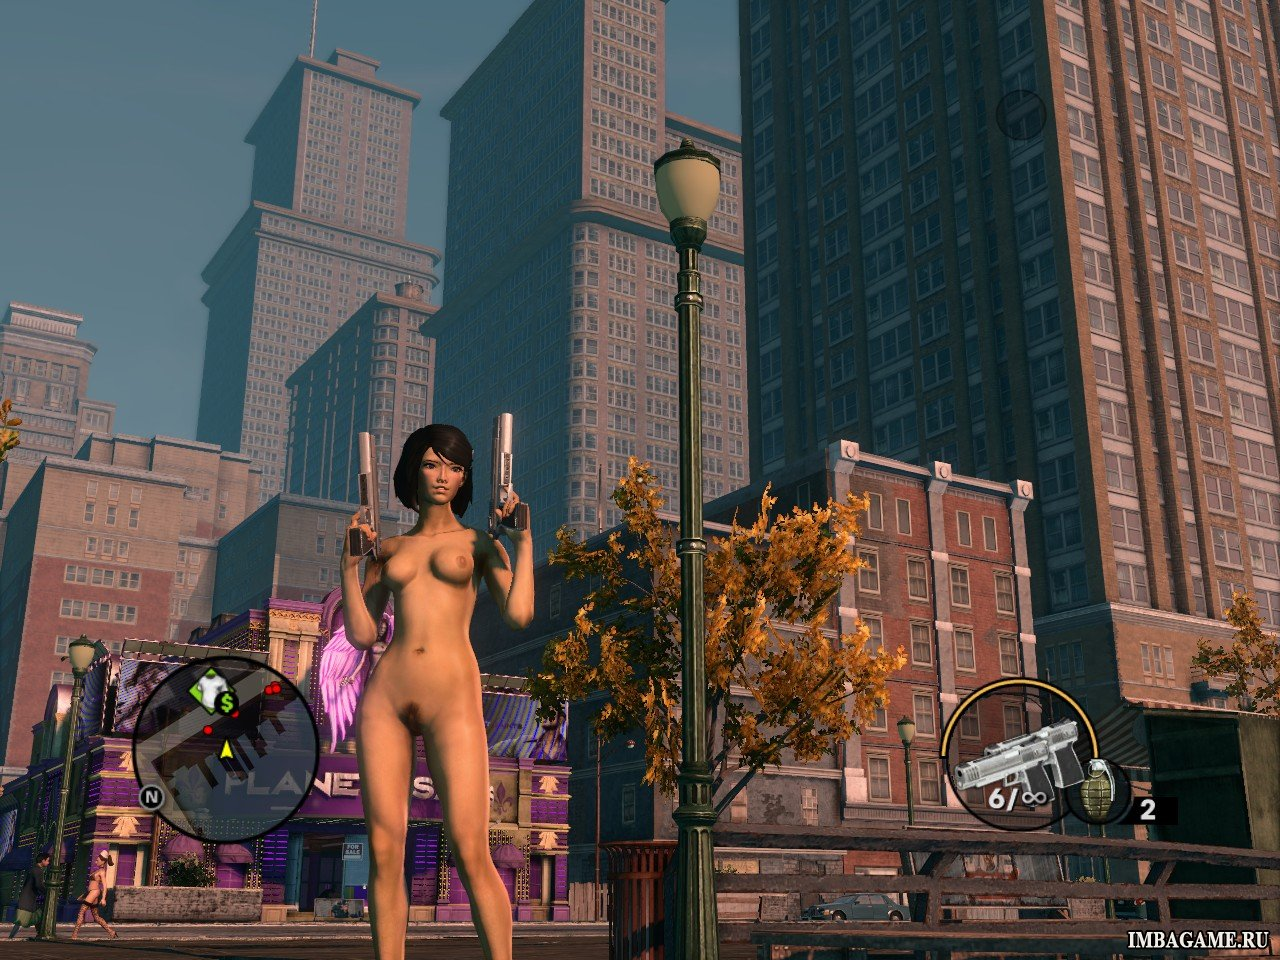 Saints row 2 nude strippers anime scene